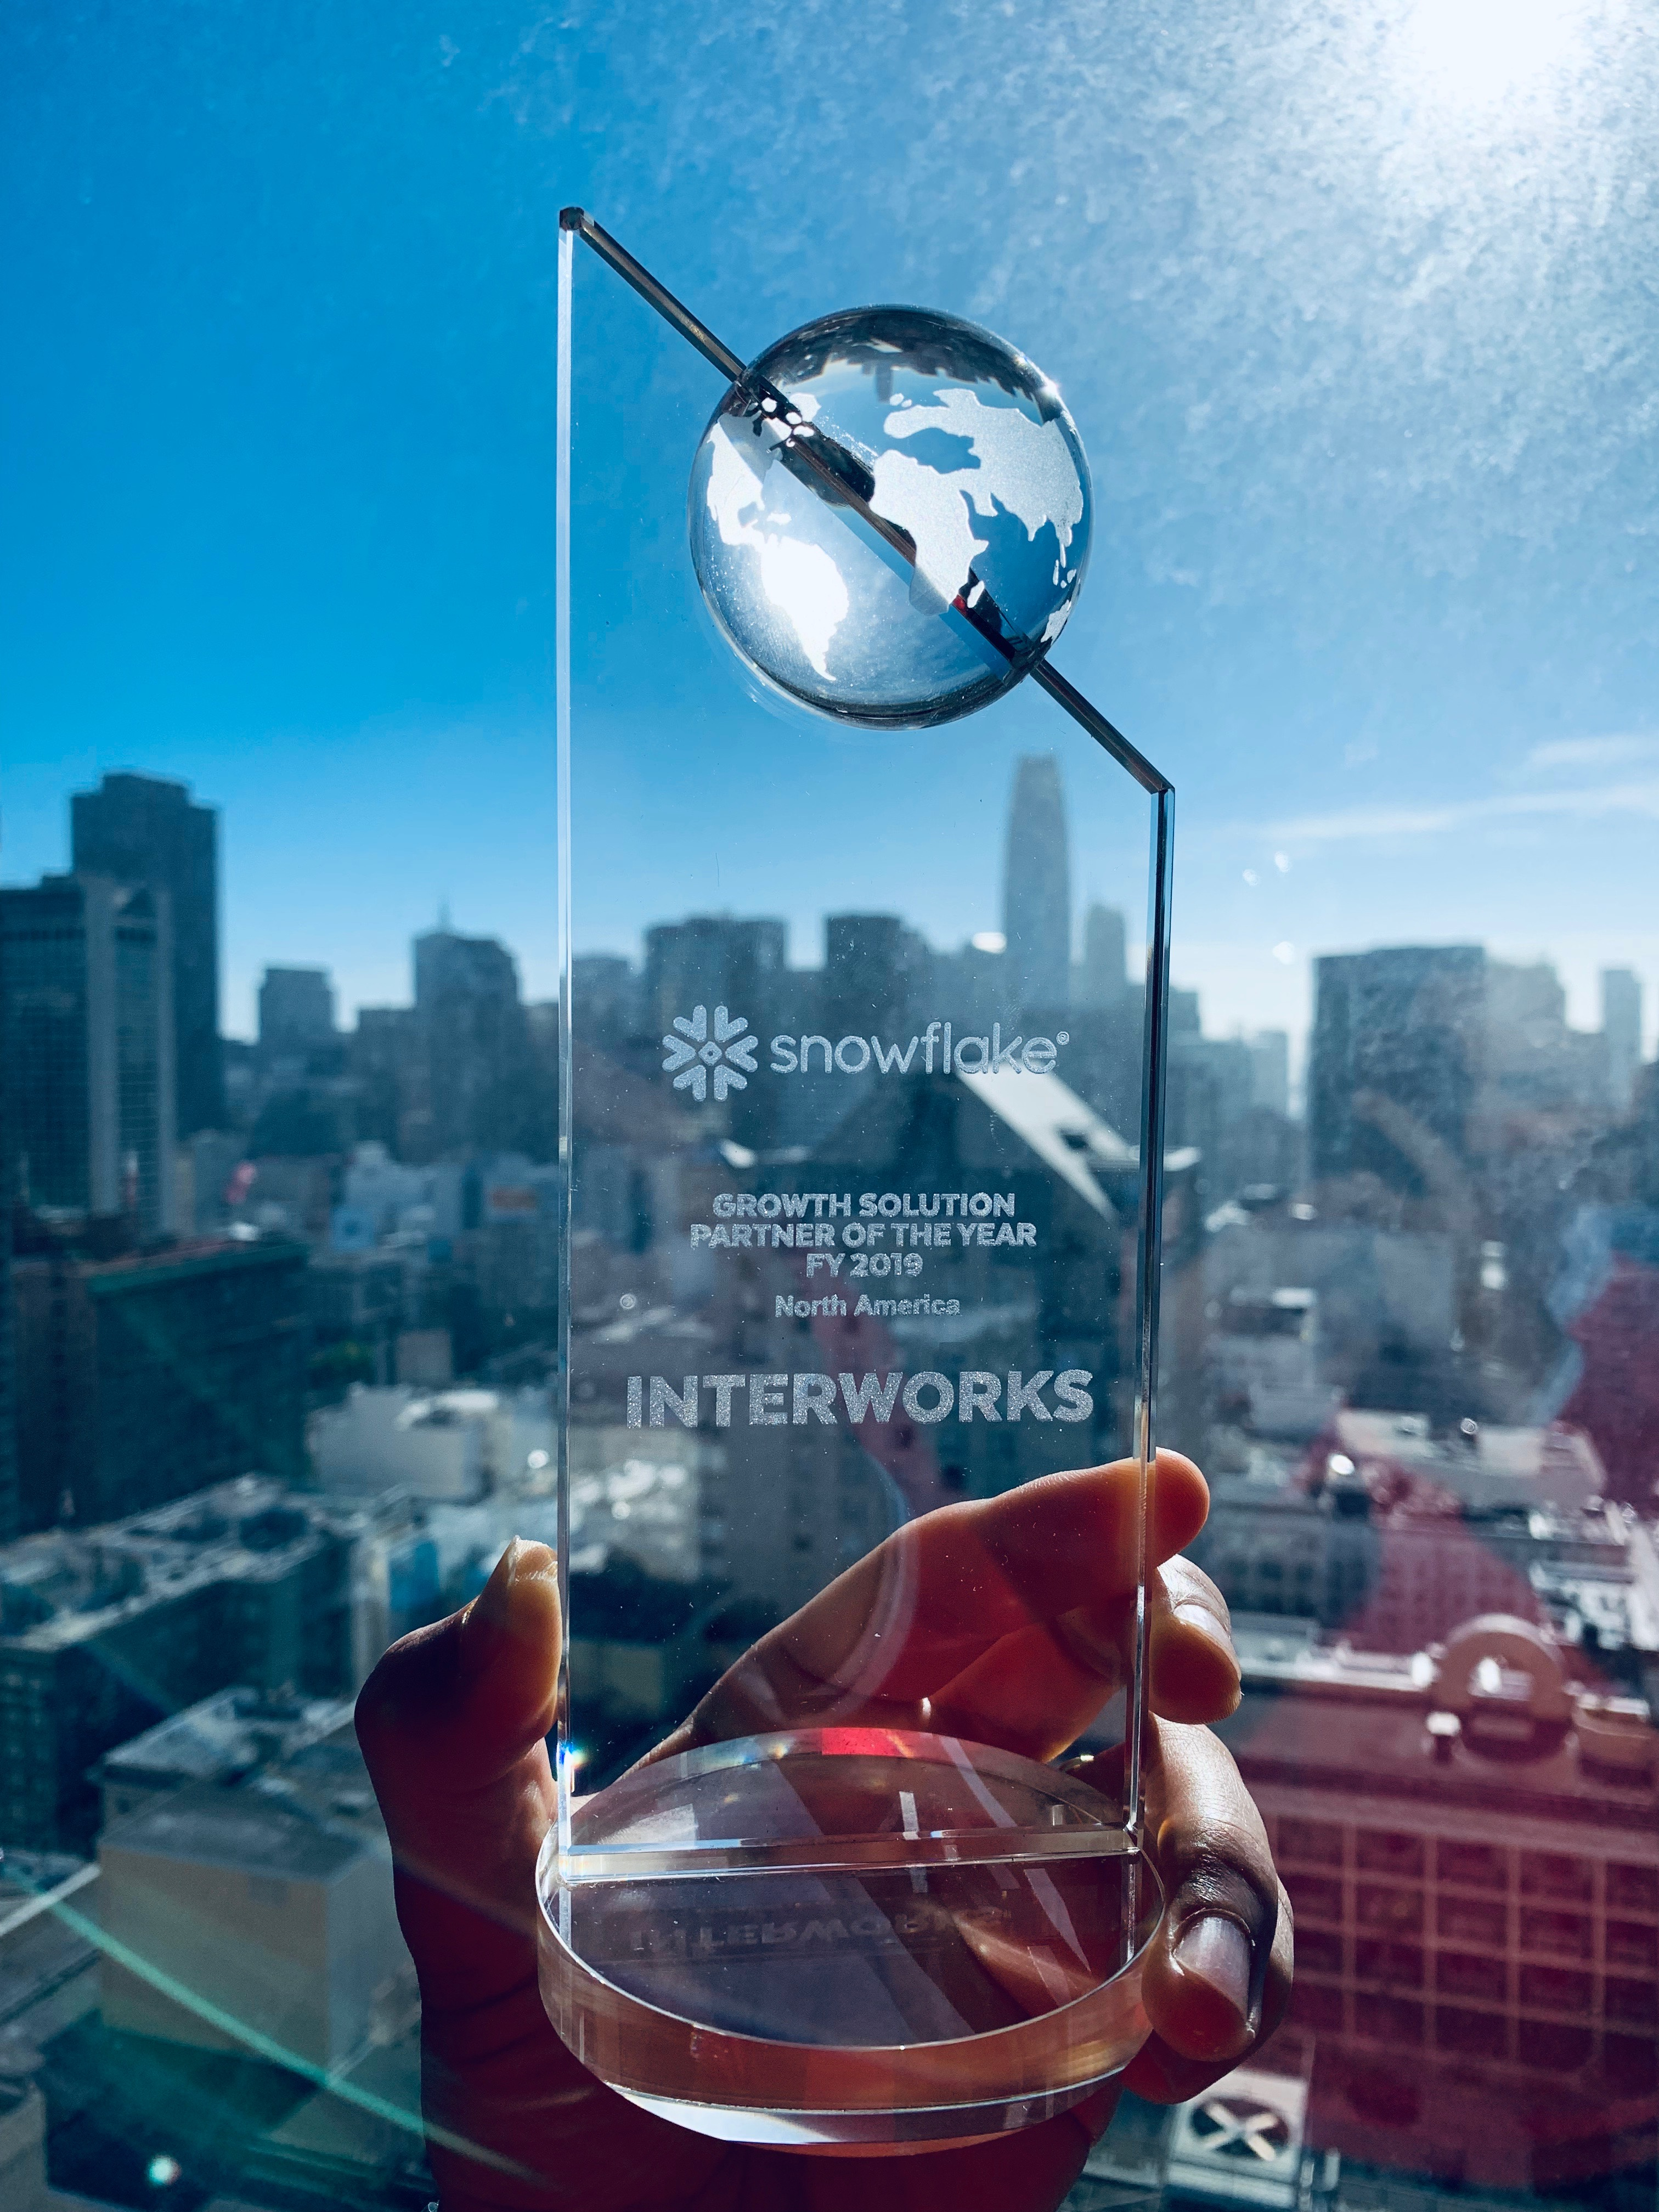 InterWorks wins Snowflake Growth Solution Partner of the Year